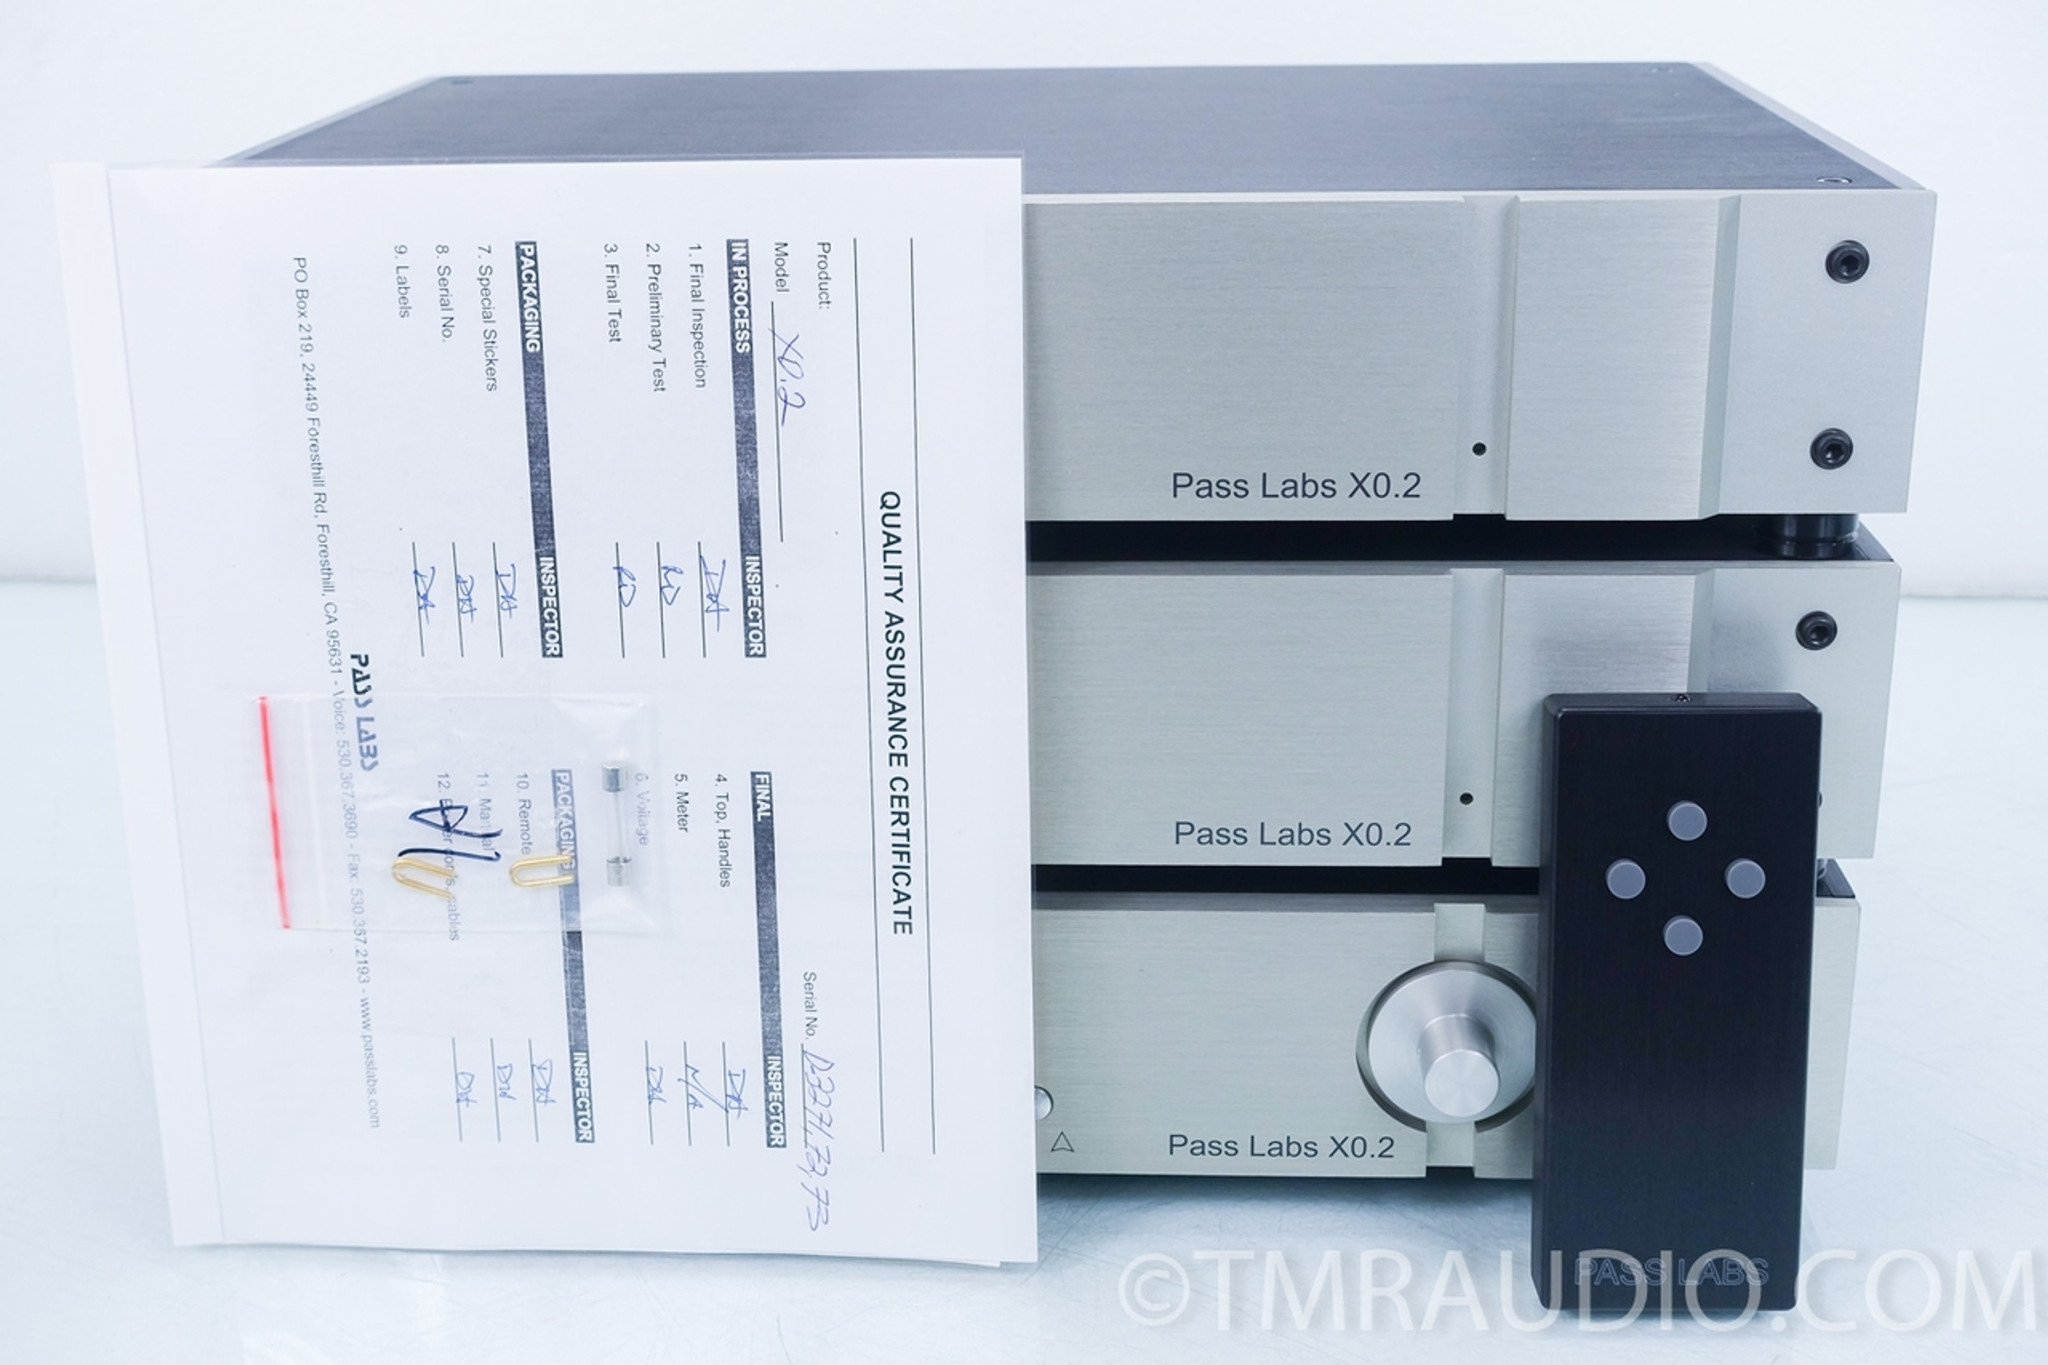 Pass Labs X0 2 Stereo Preamplifier in Factory Box